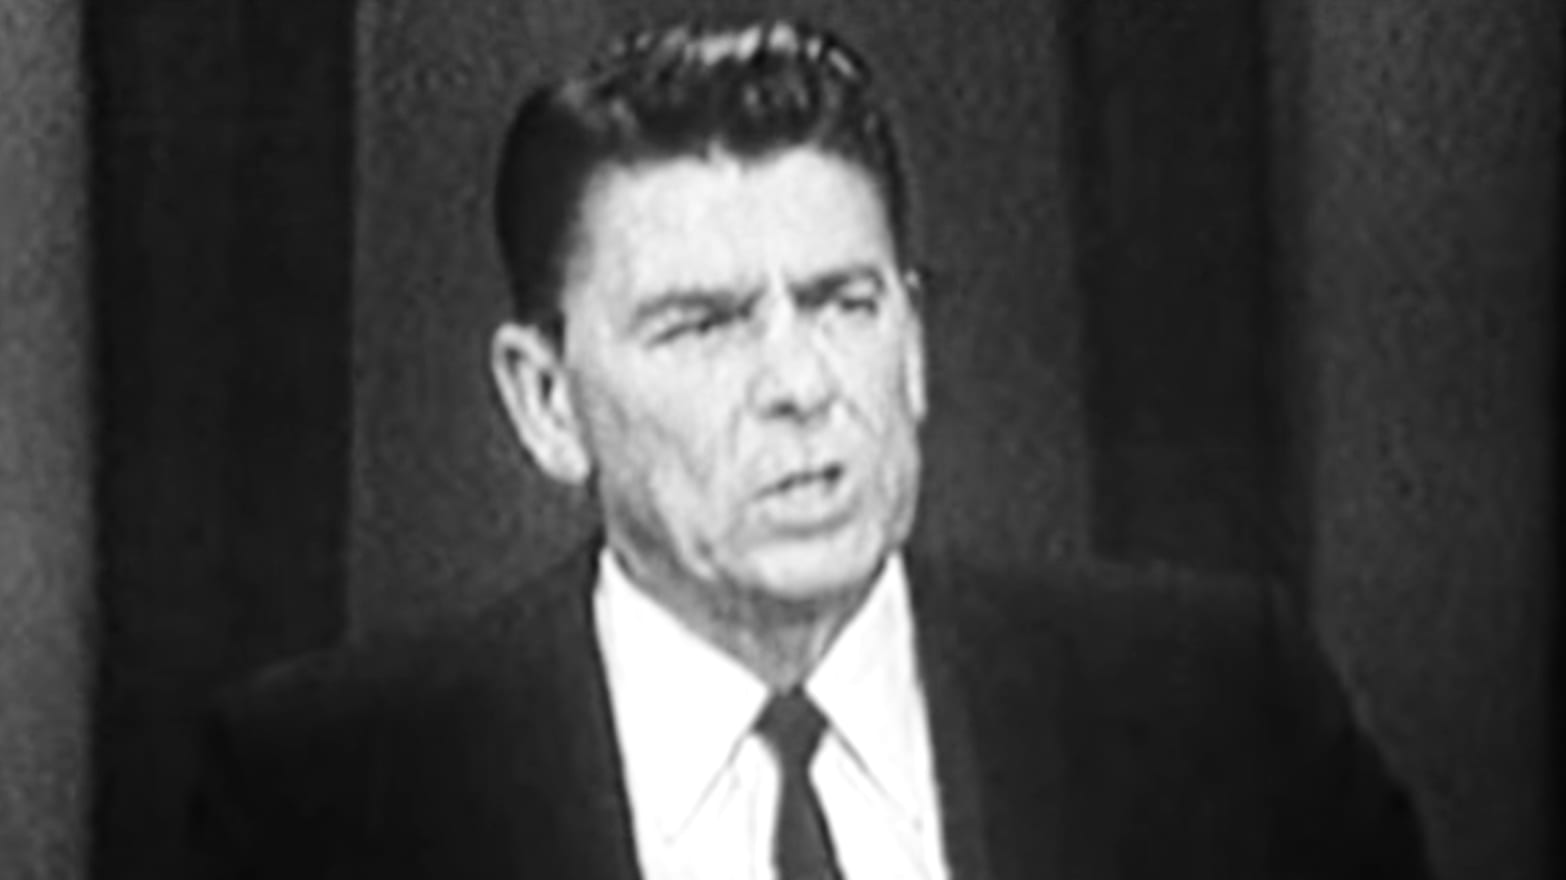 Ronald Reagans Famous Speech - A Time For Choosing - October 27, 1964